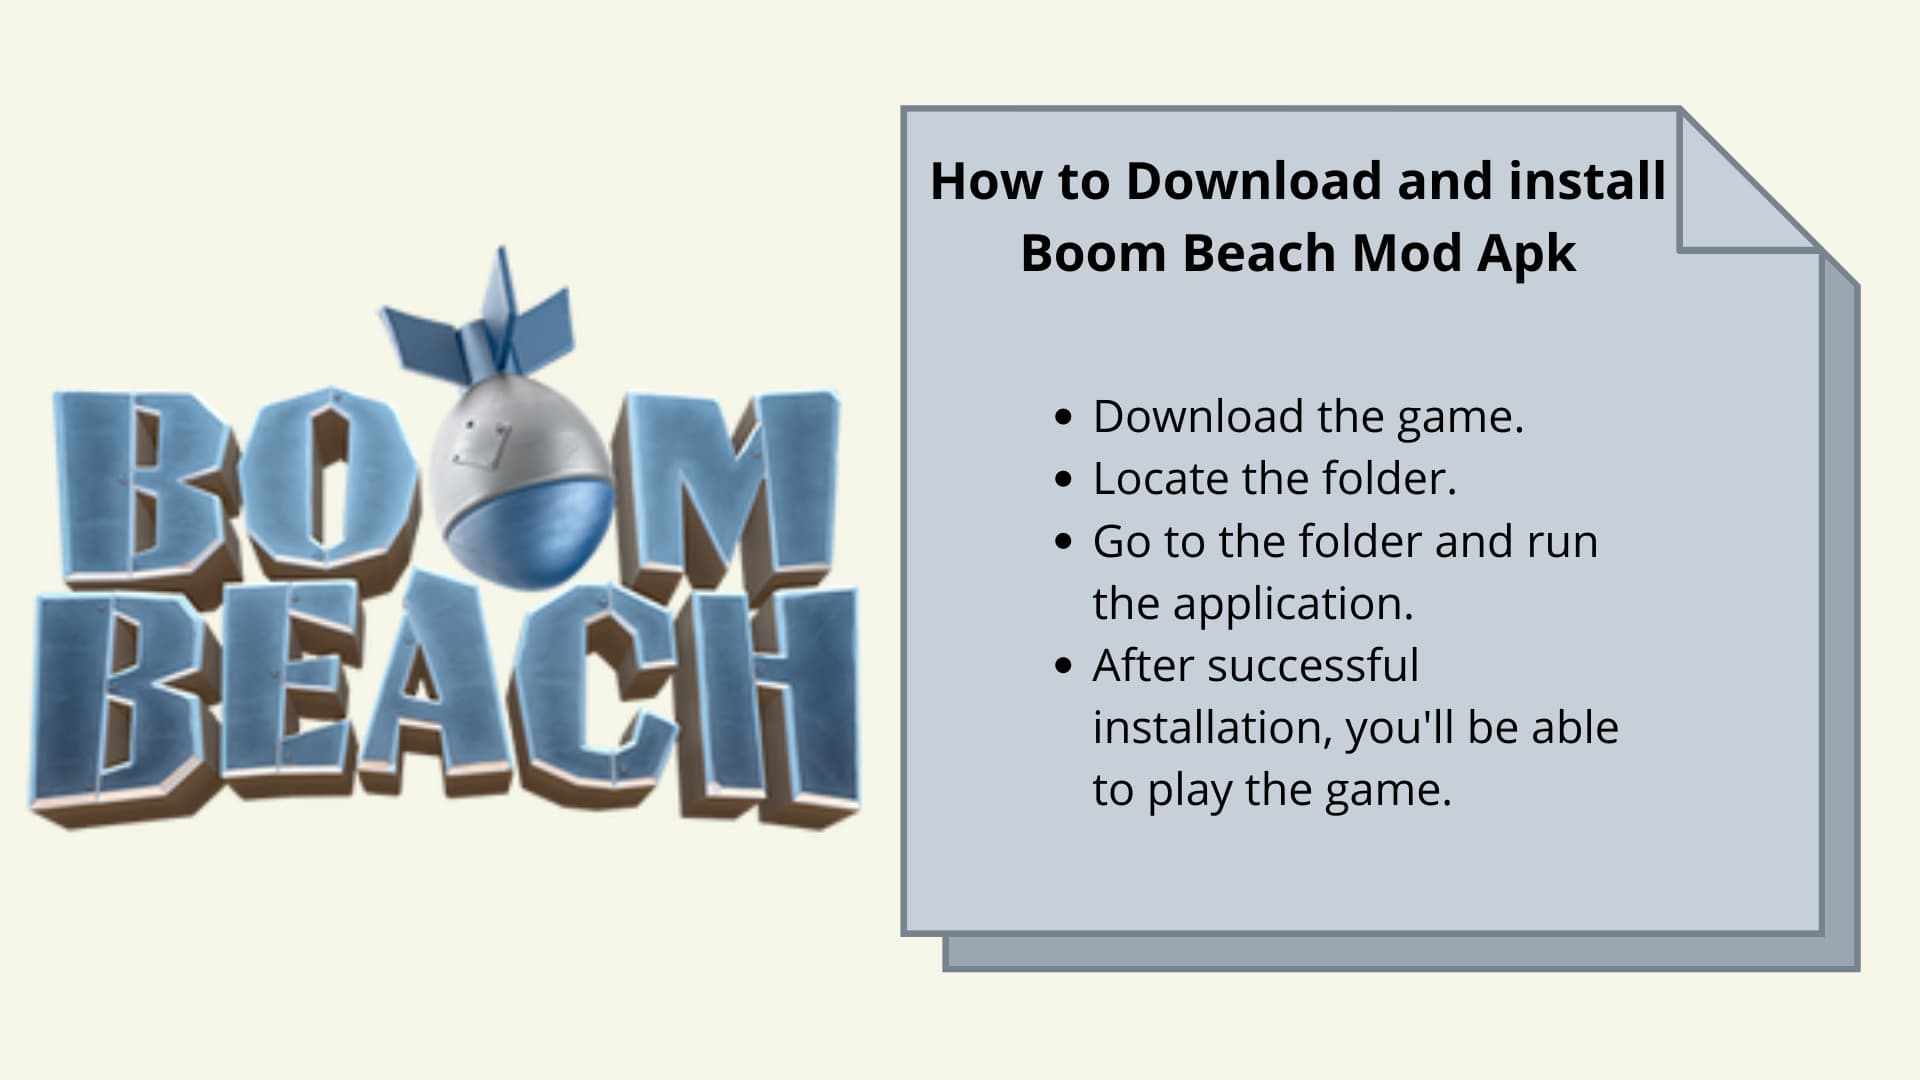 How to Download and install Boom Beach Mod Apk